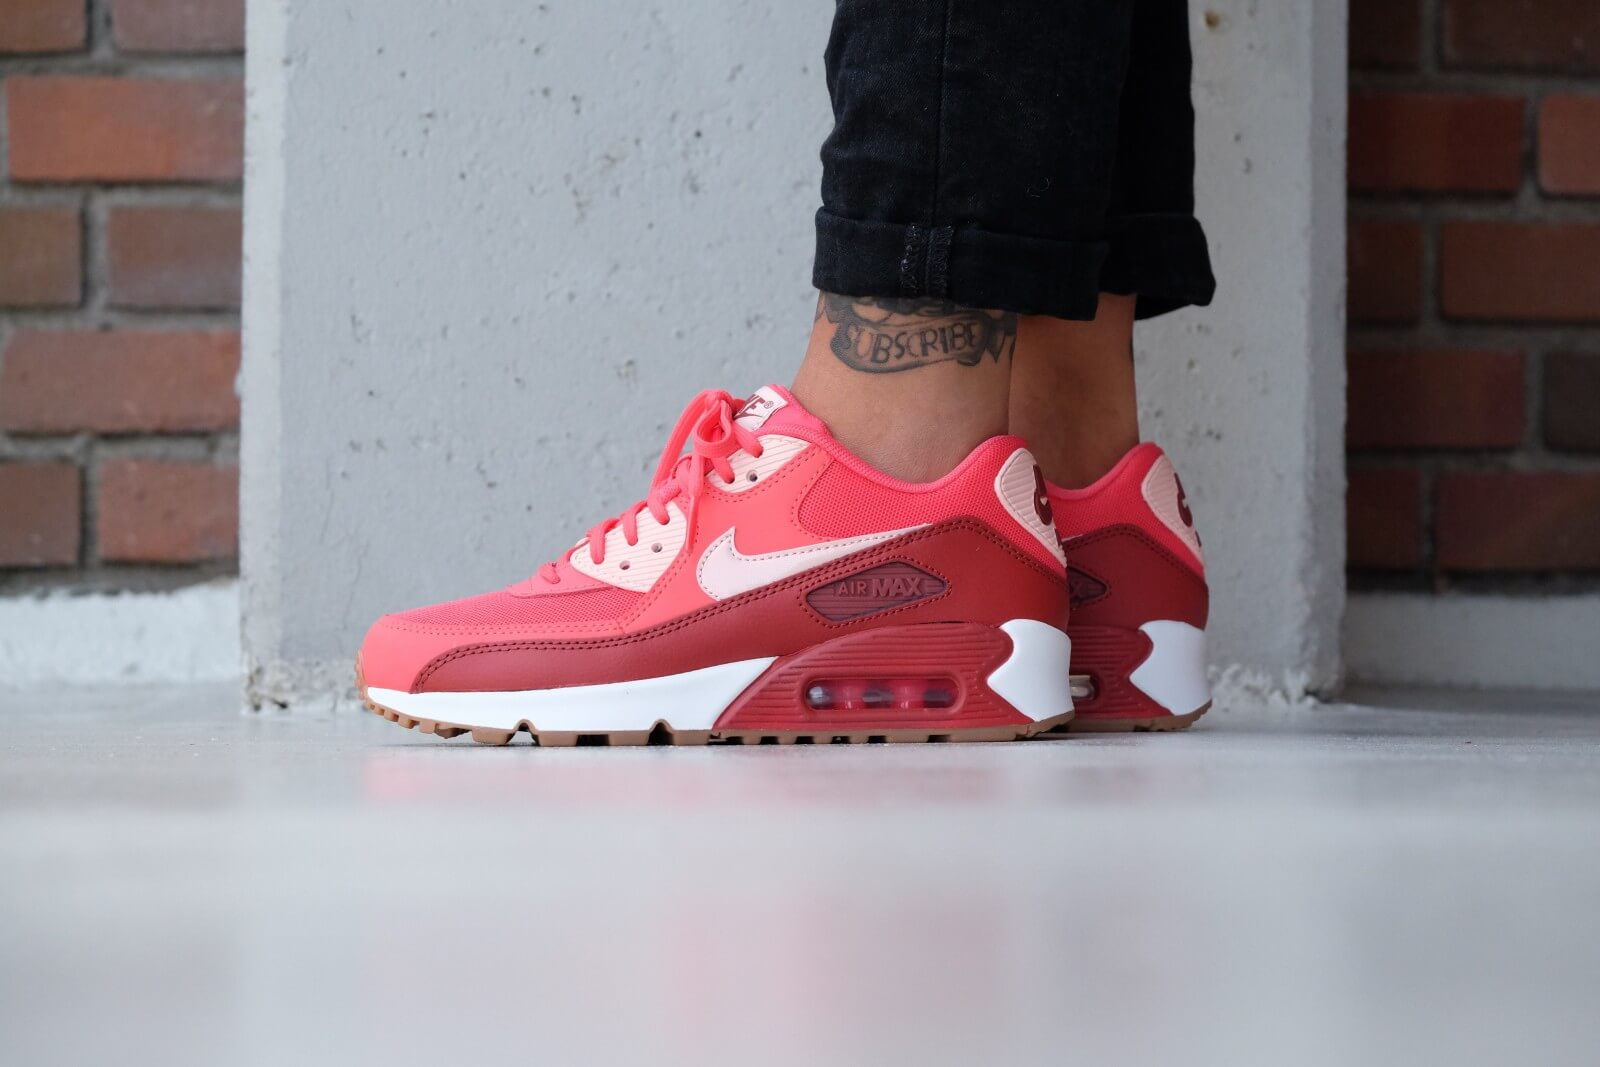 Nike WMNS Air Max 90 Essential Ember glow Arctic orange dark cayenne 616730 800 Ember glow Arctic orange dark cayenne 616730 800